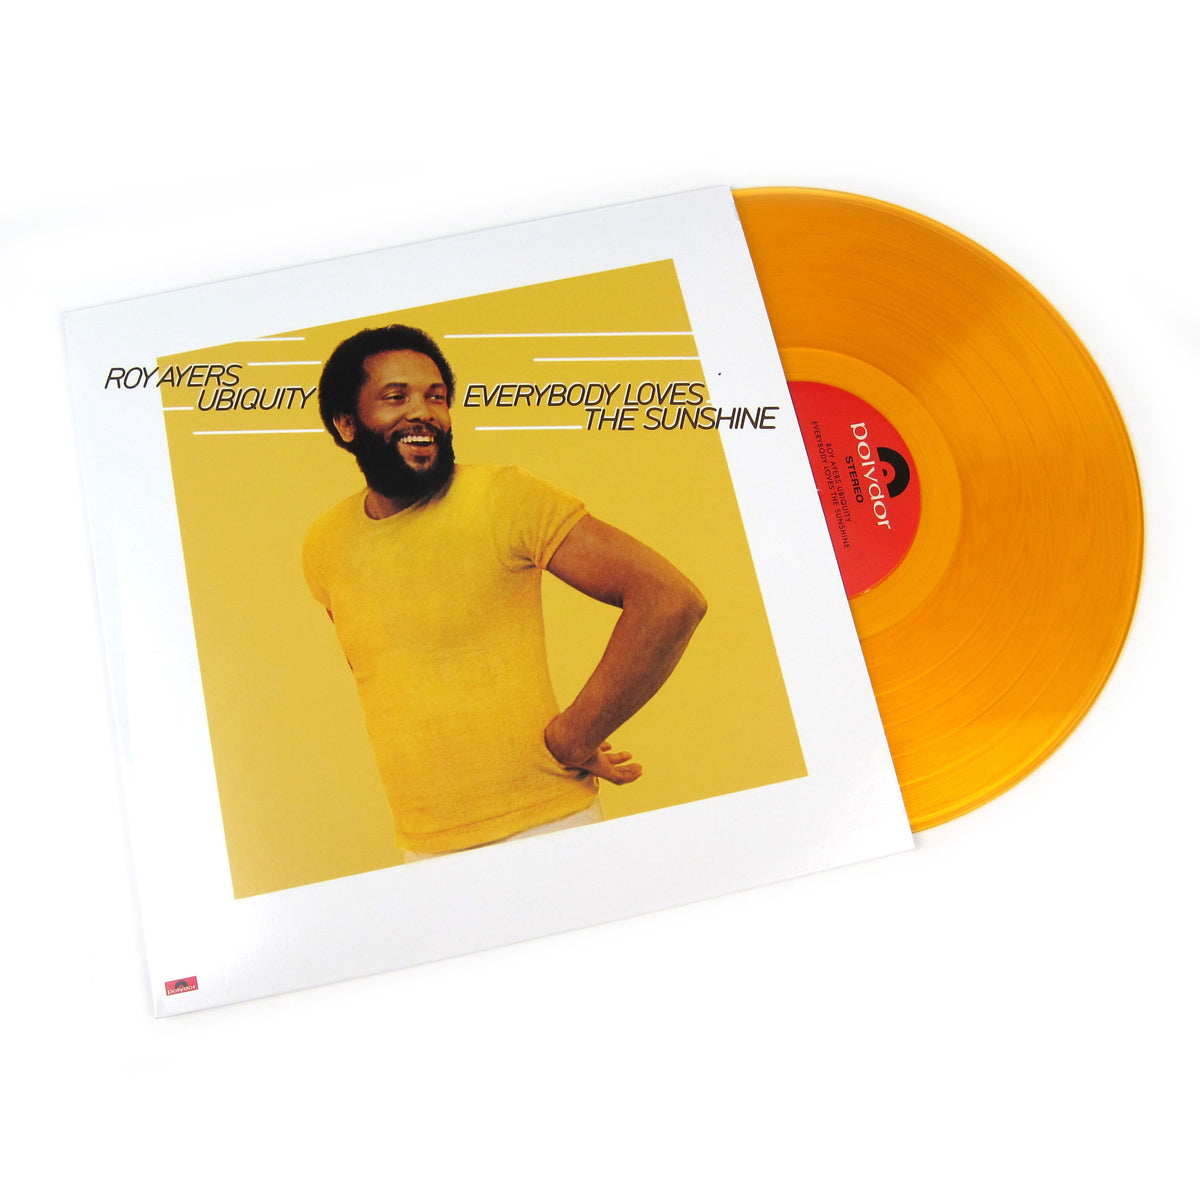 Roy Ayers Ubiquity: Everybody Loves The Sunshine (Colored Vinyl) Vinyl LP